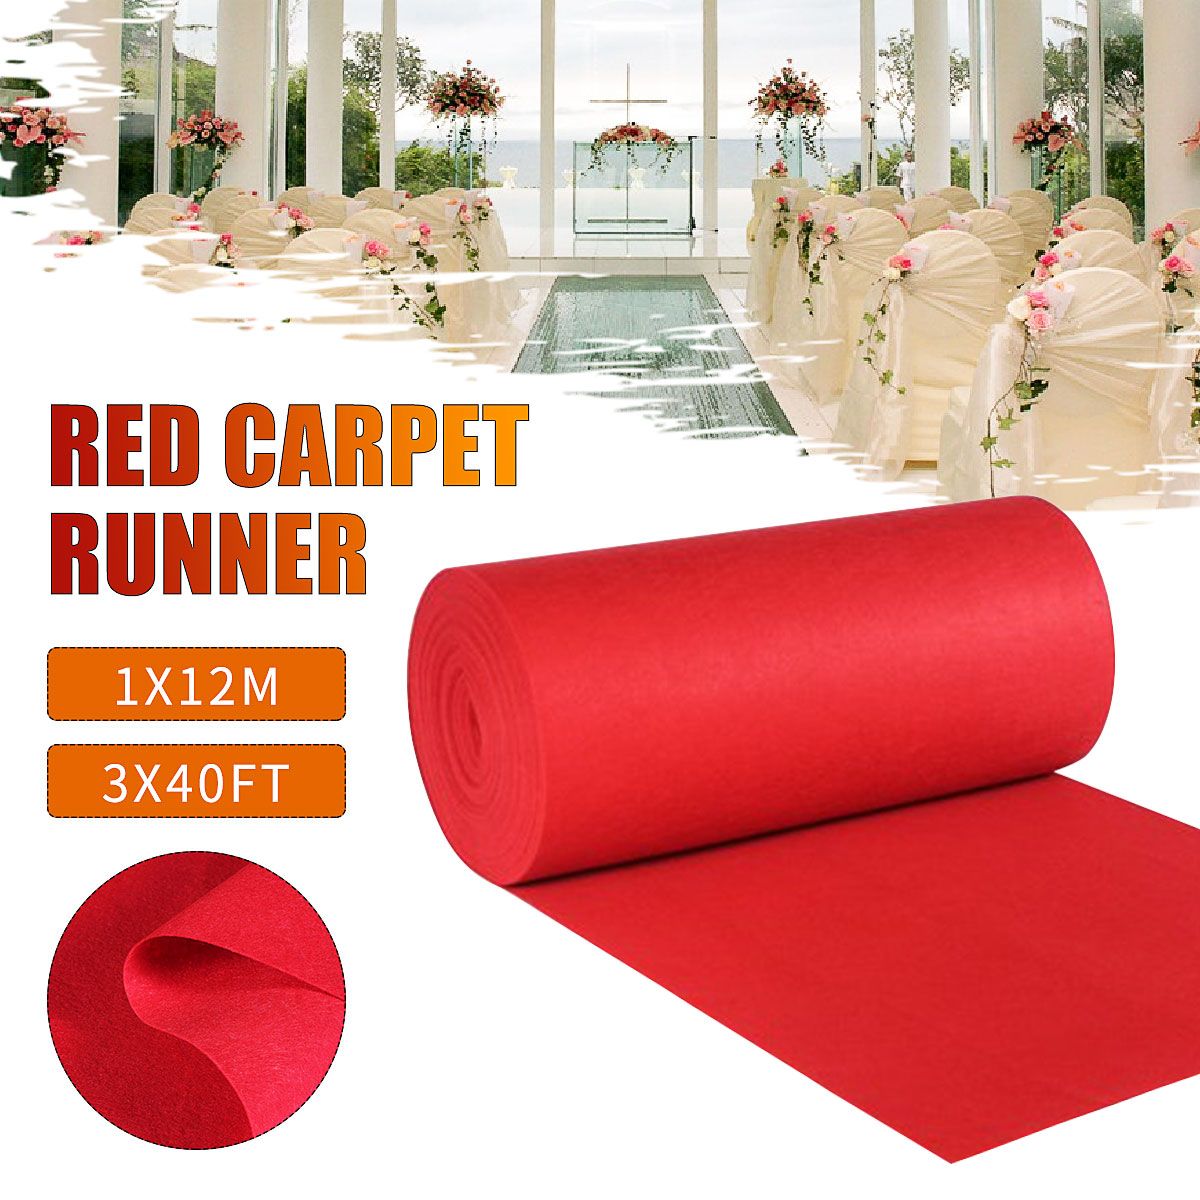 Large Red Carpet Wedding Aisle Floor Runner Outdoor Hollywood Party Decoration Banquet Celebration Event Reward Carpet 12x1M